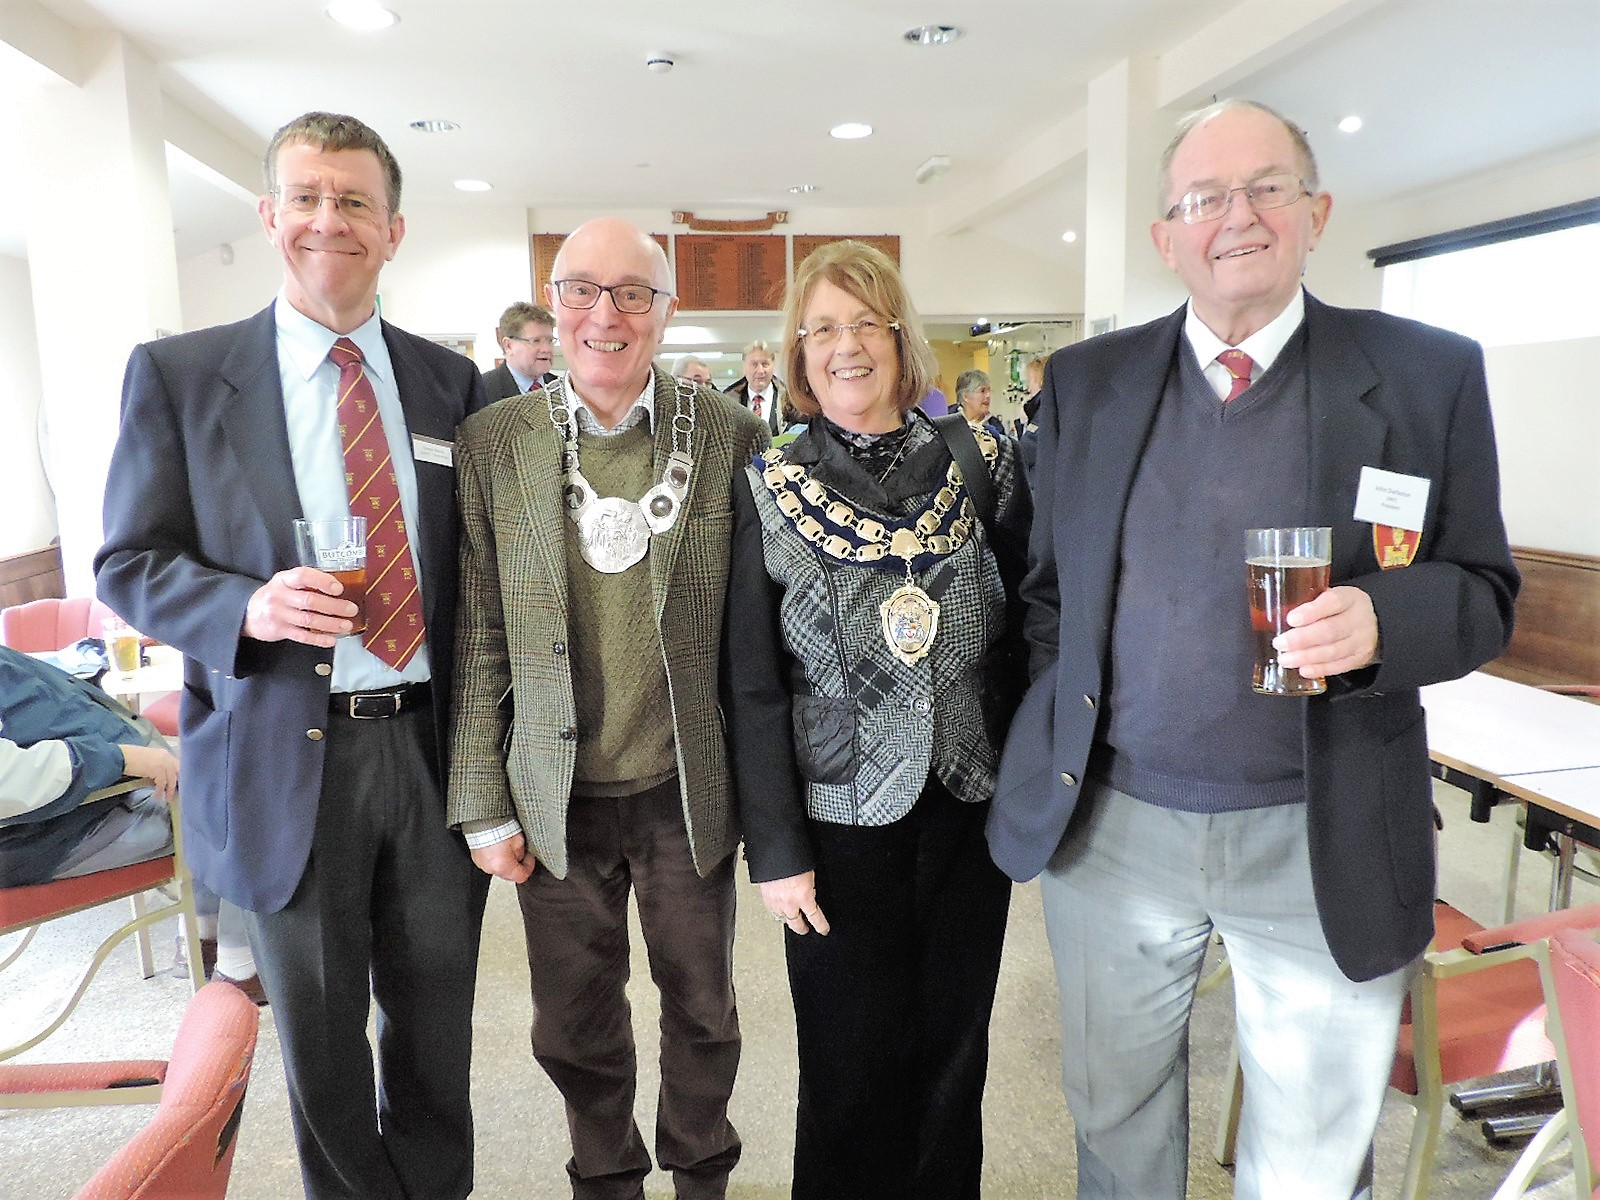 Mayor of Weston visit